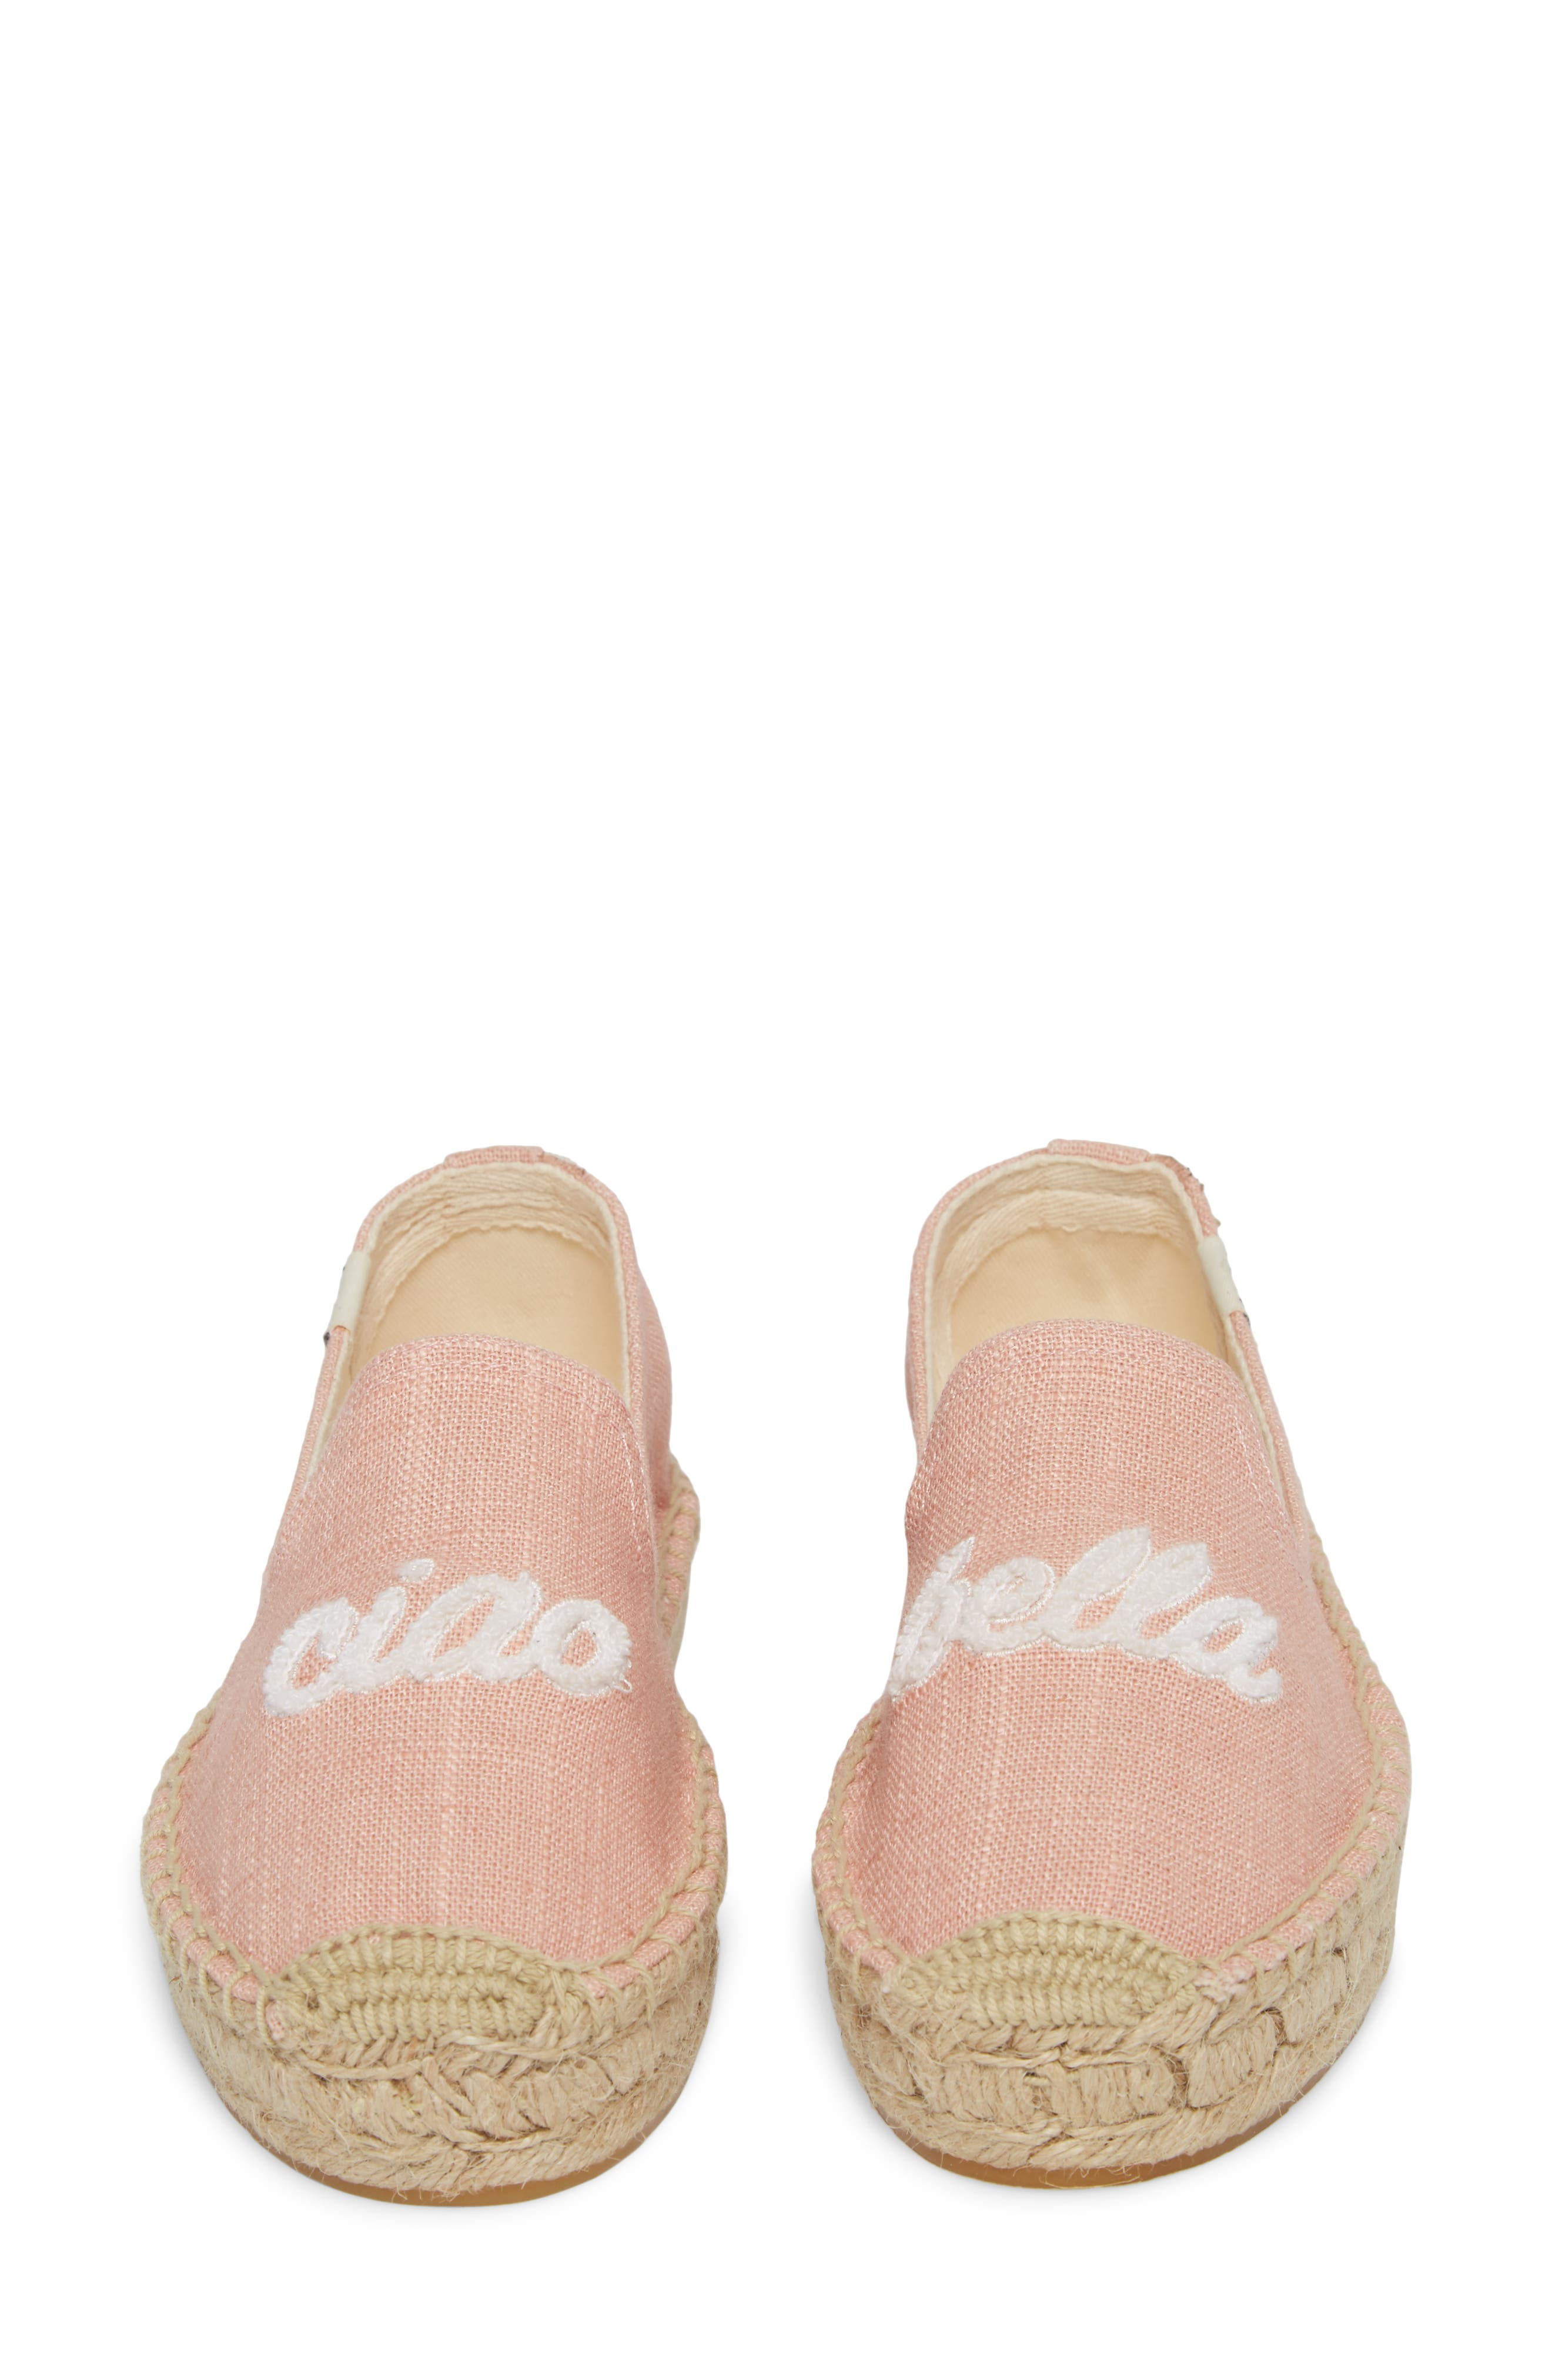 Ciao Bella Espadrille Flat,                             Alternate thumbnail 5, color,                             Dusty Rose Fabric